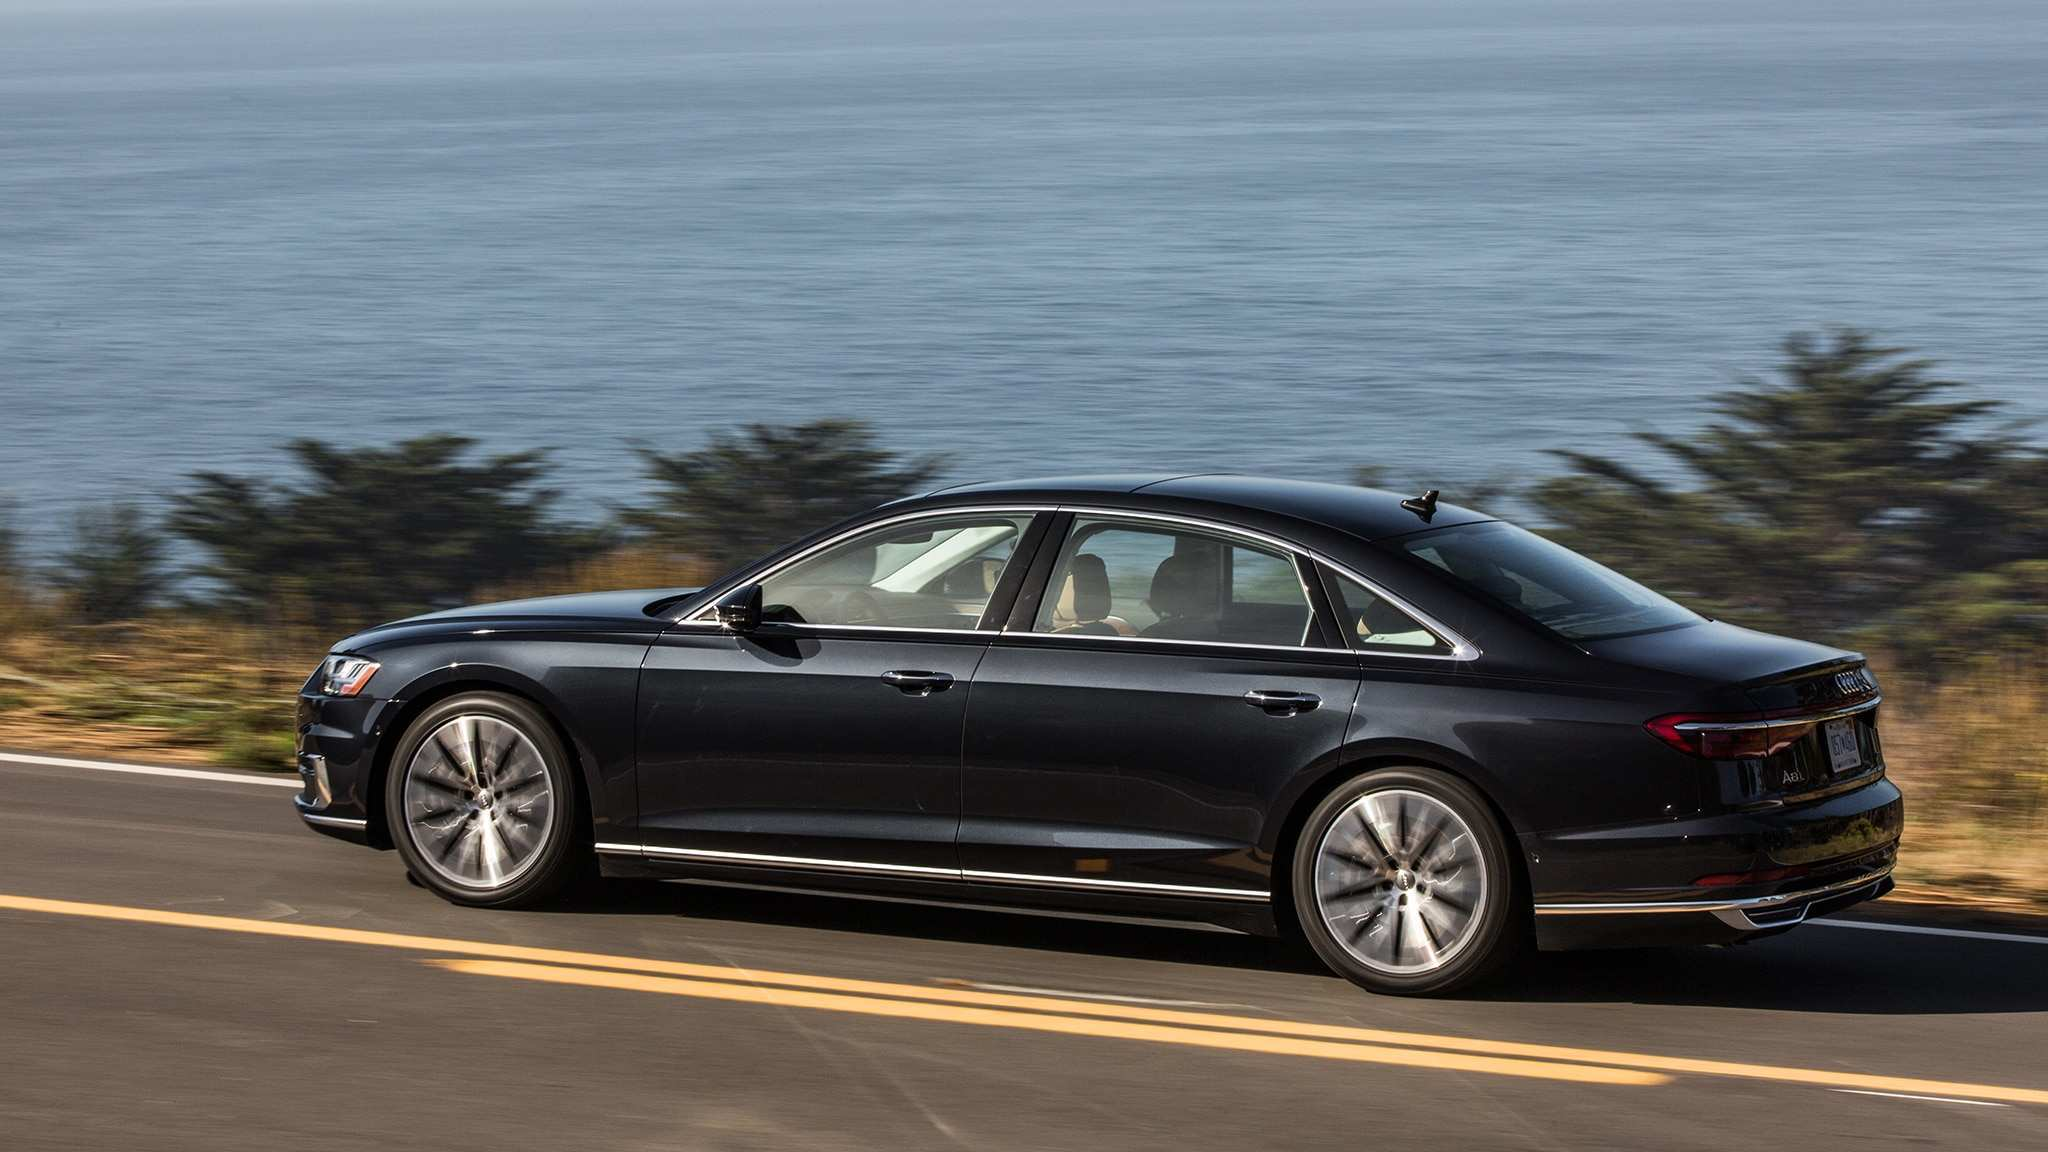 76 All New 2019 Audi A8 Photos Engine with 2019 Audi A8 Photos